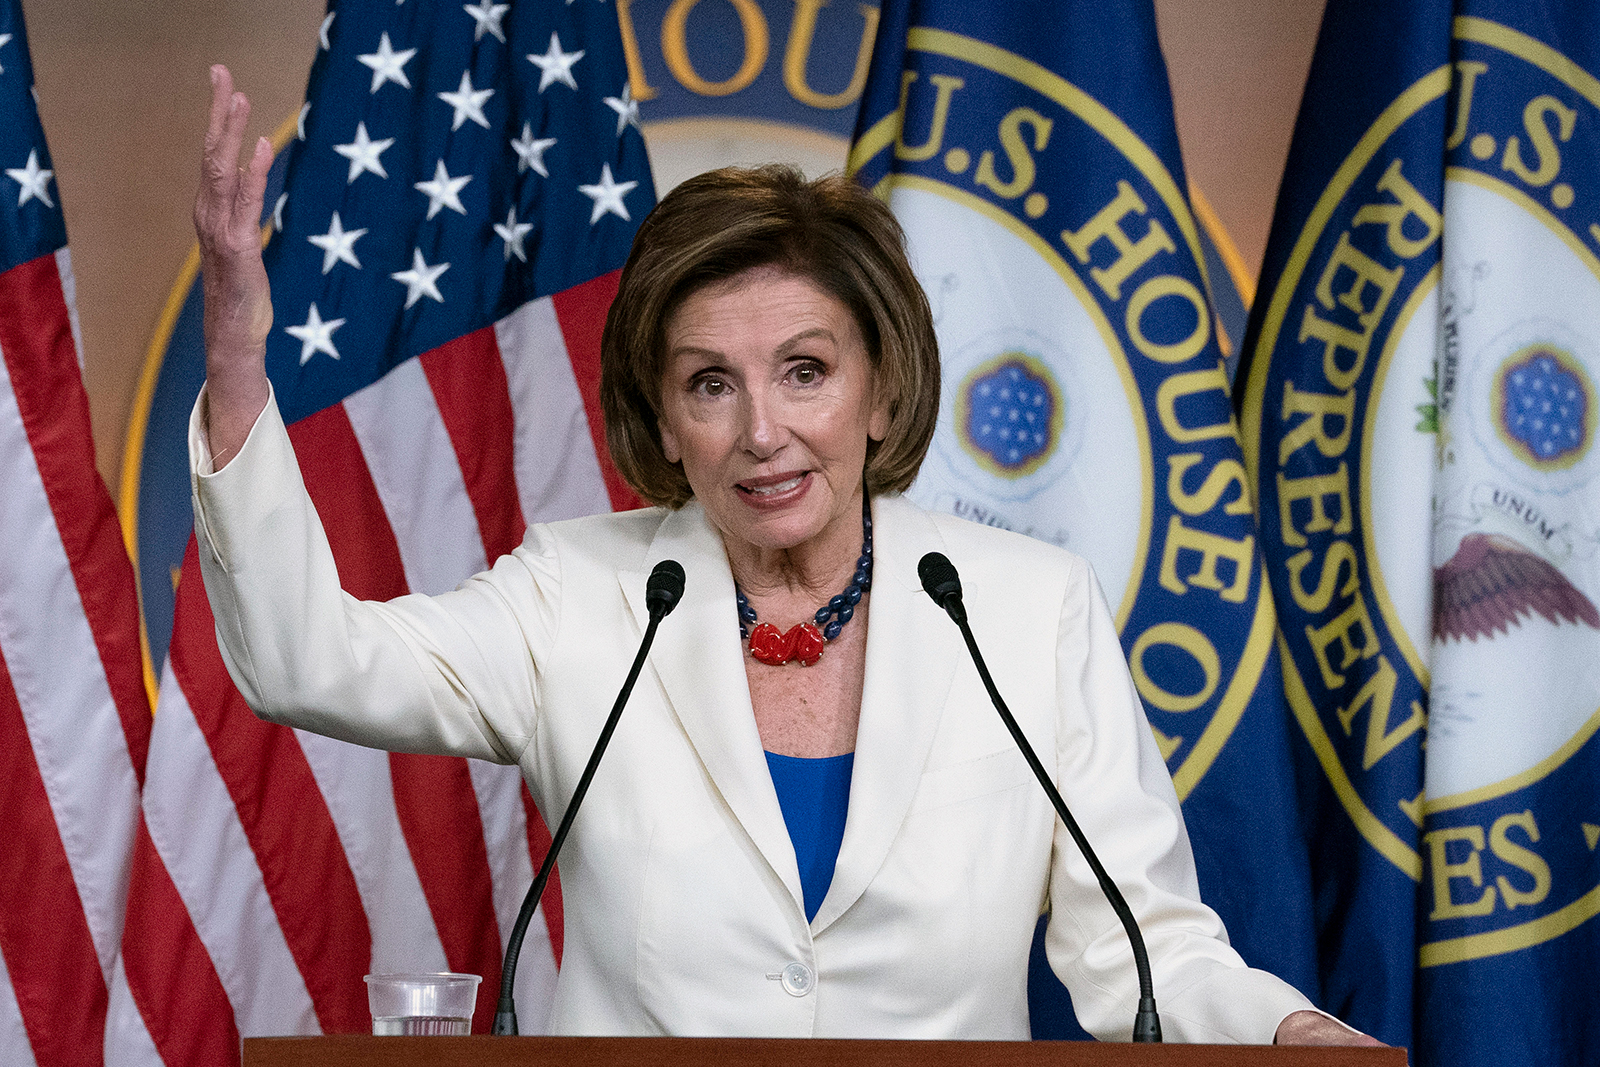 Speaker of the House Nancy Pelosi, D-Calif., speaks during a news conference on Capitol Hill in Washington, Thursday, May 20.